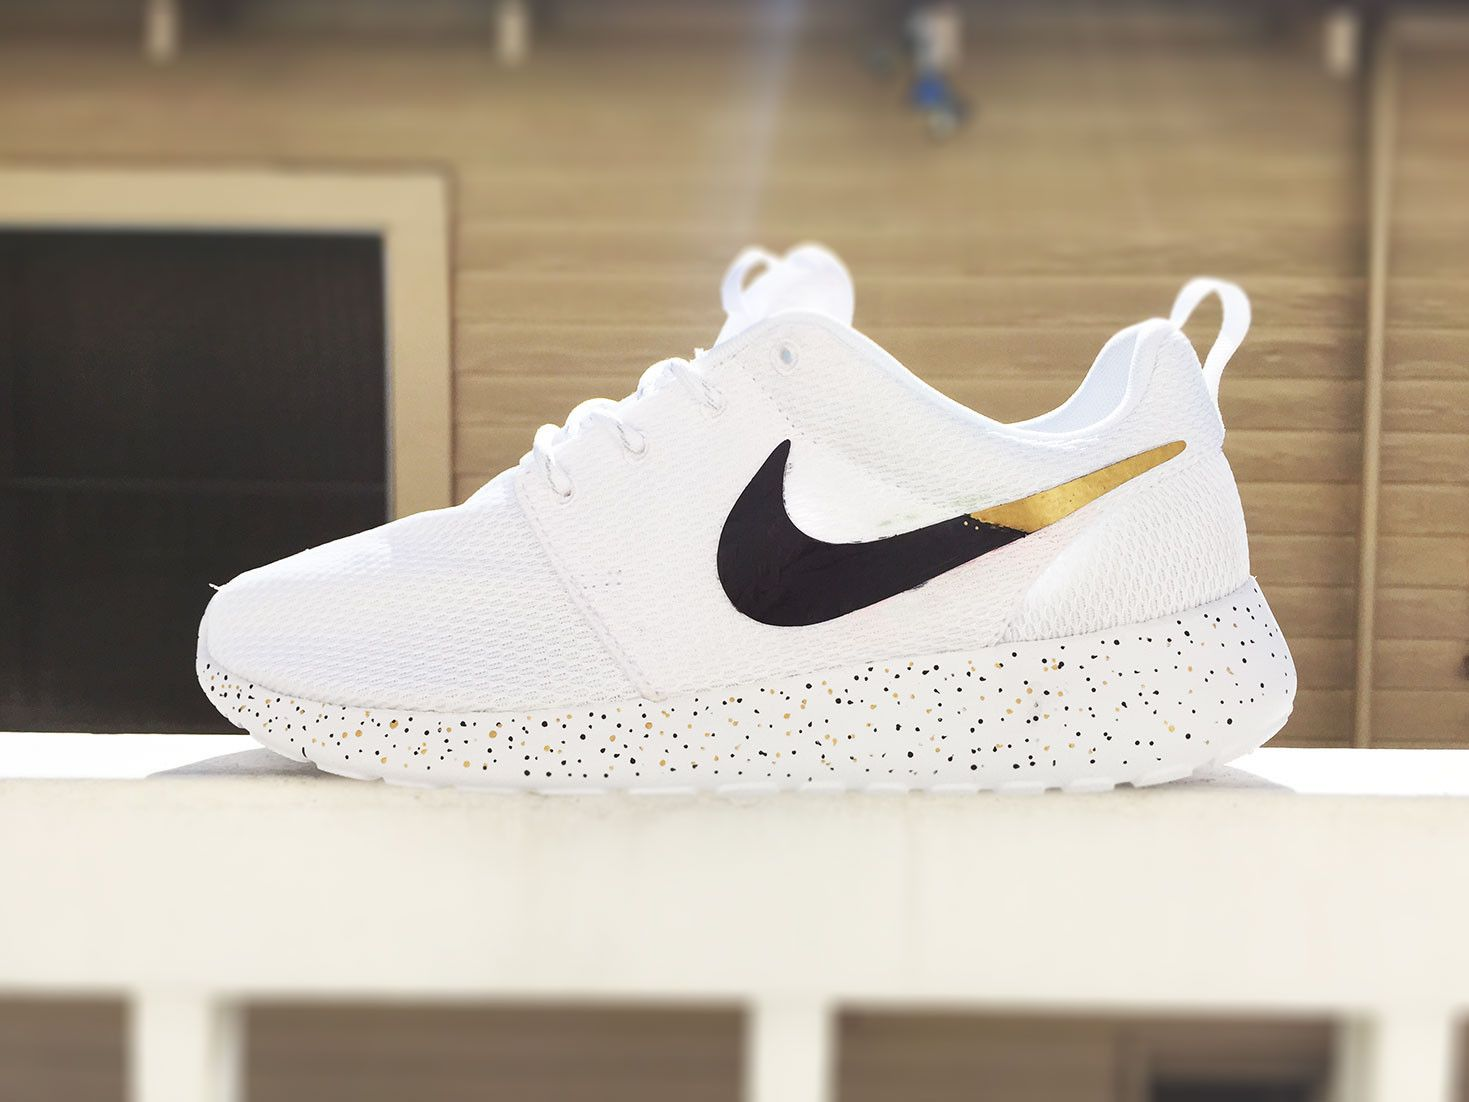 huge discount f31b3 55cf8 Custom Nike Roshe Run sneakers for women, All white, Black and Gold,  Silver, specles, gold flakes, love, fashionable design